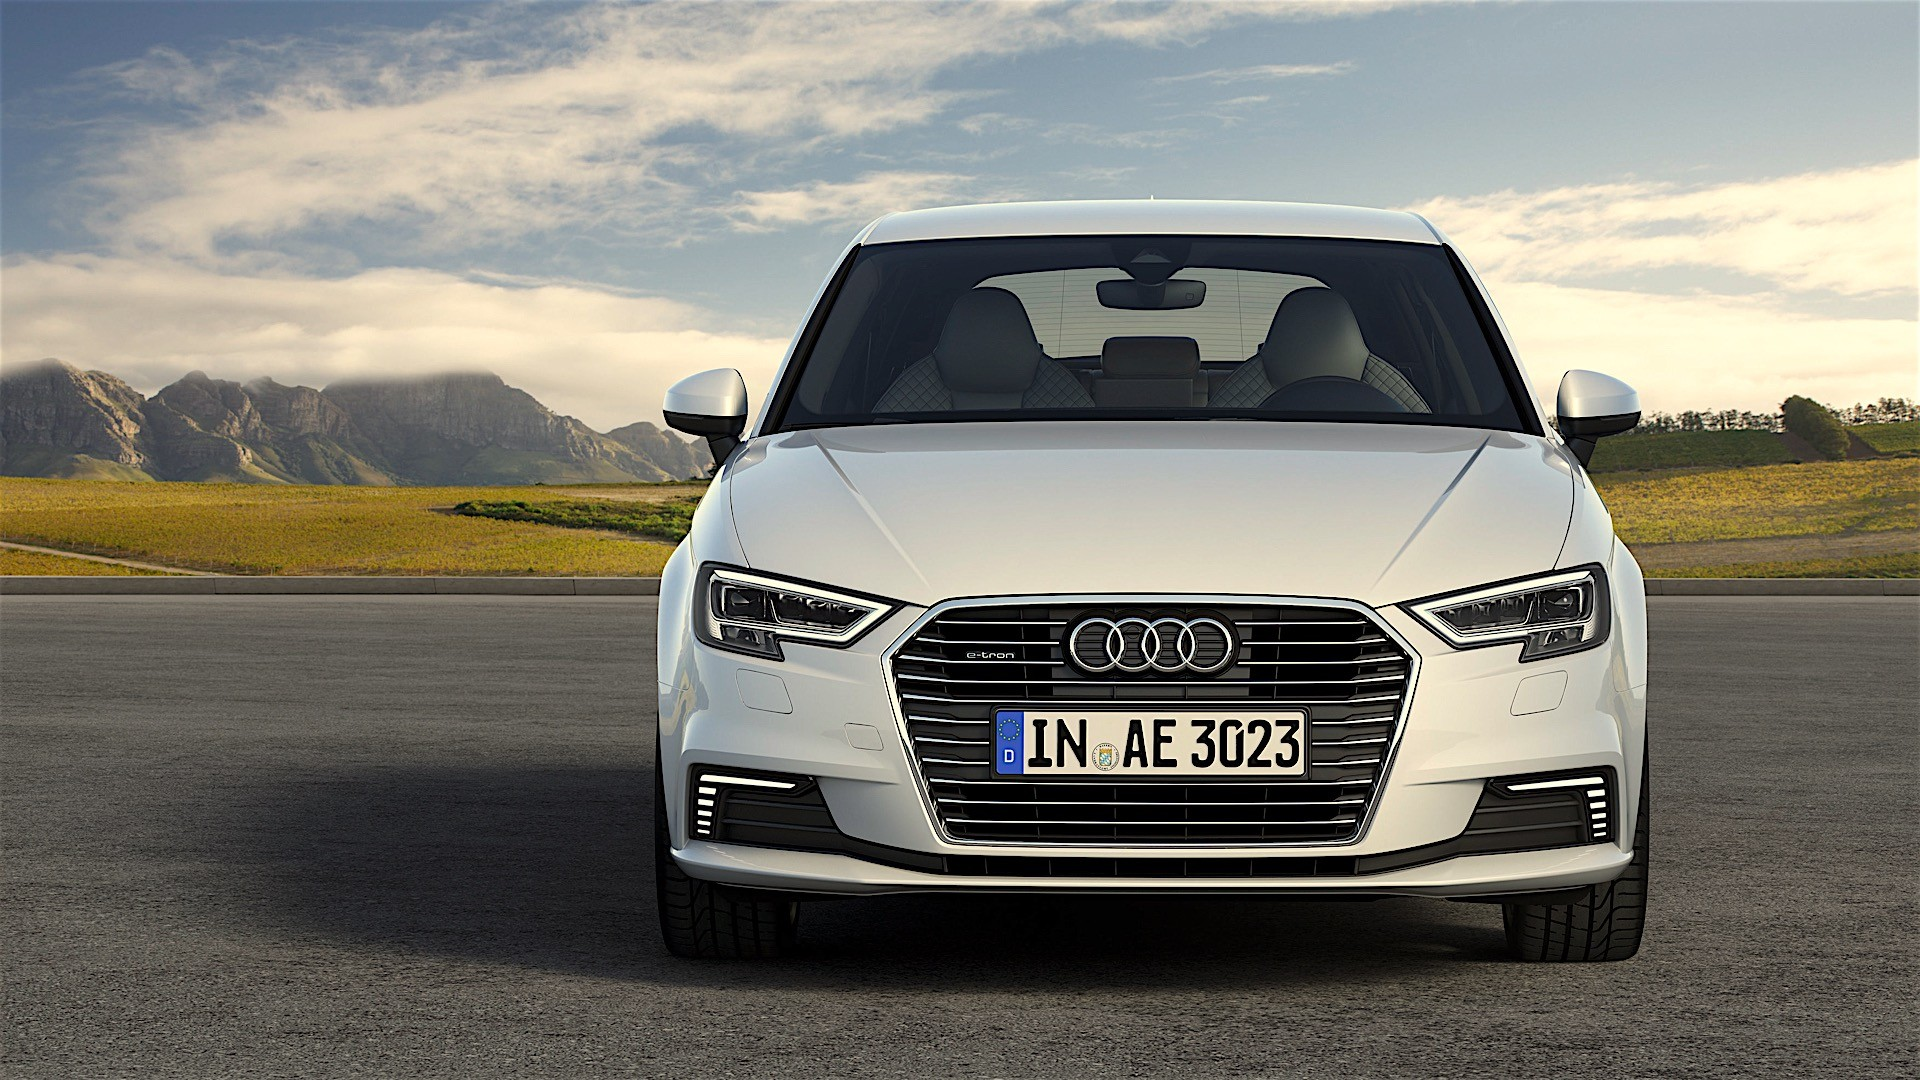 2020 Audi A3 Facelift Configurator Launched in Germany, S3 Not Ready ...